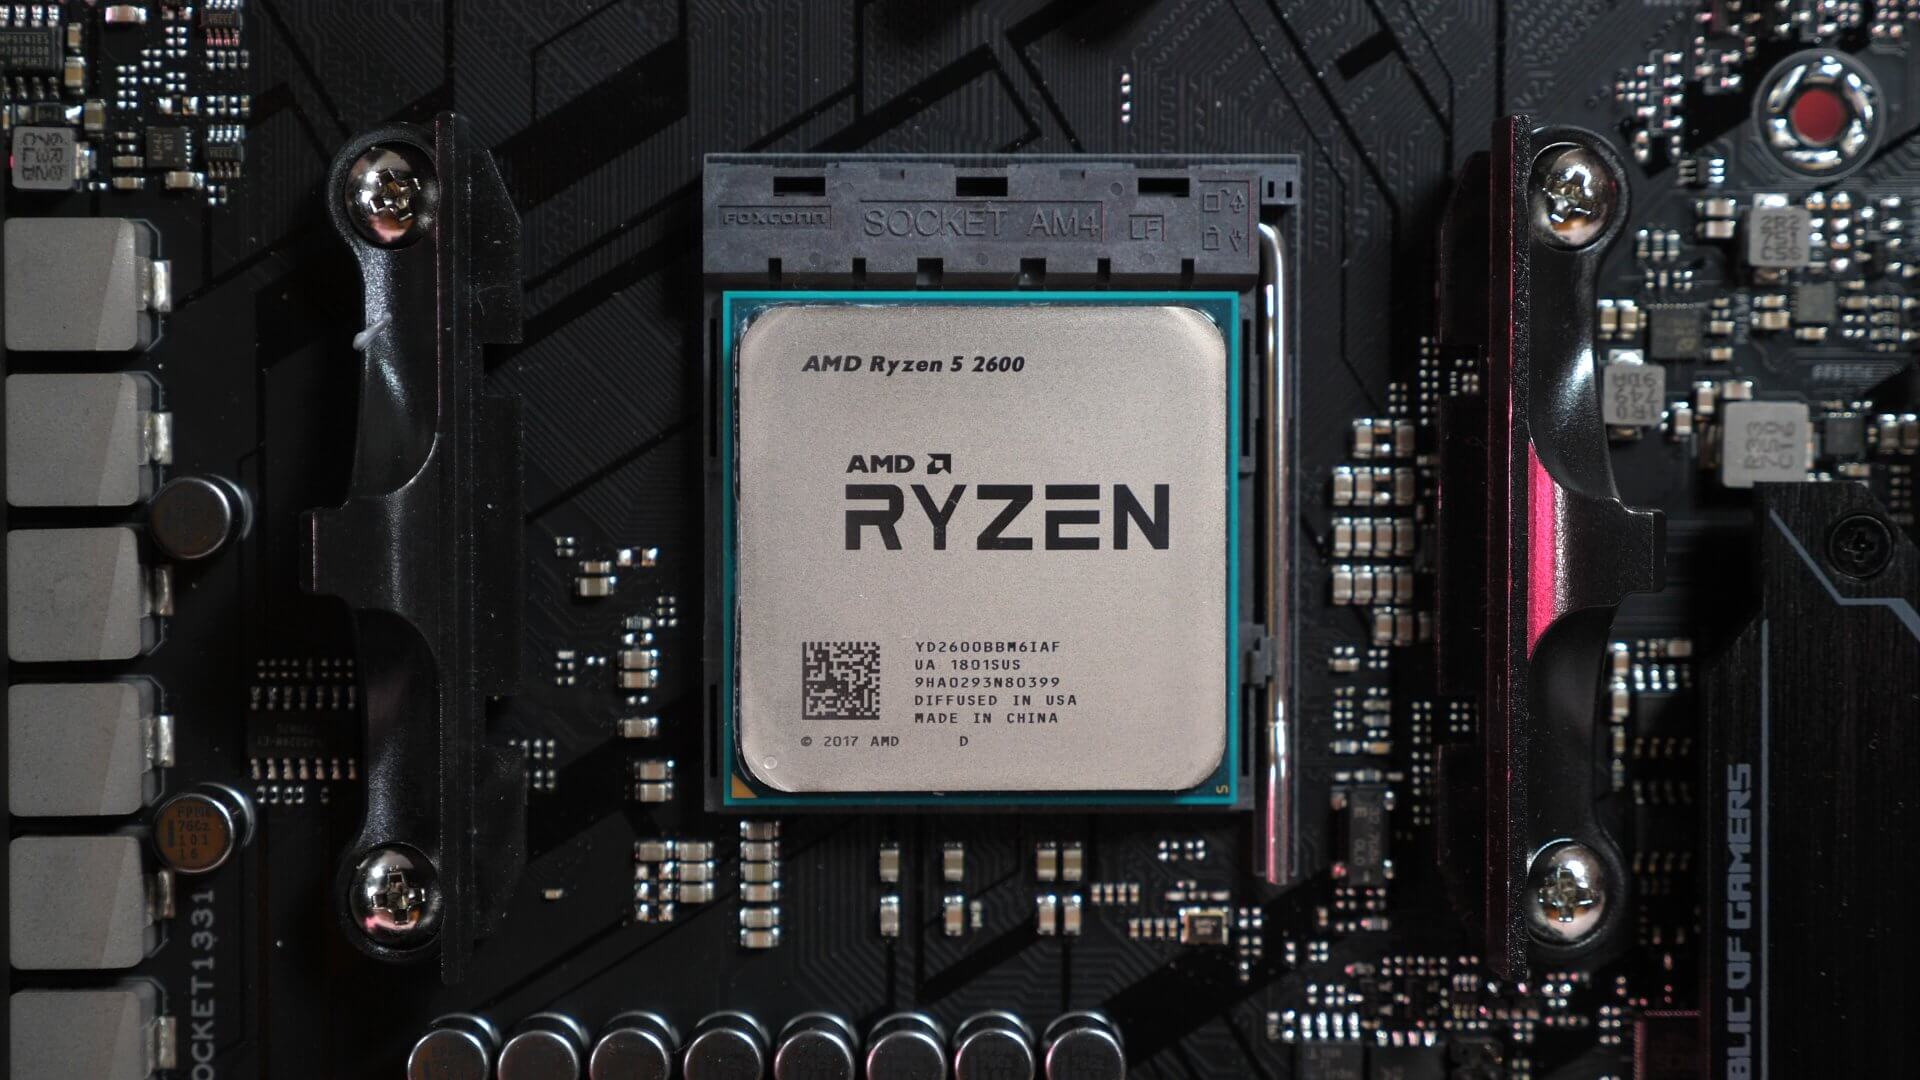 AMD's strong earnings driven primarily by Ryzen and